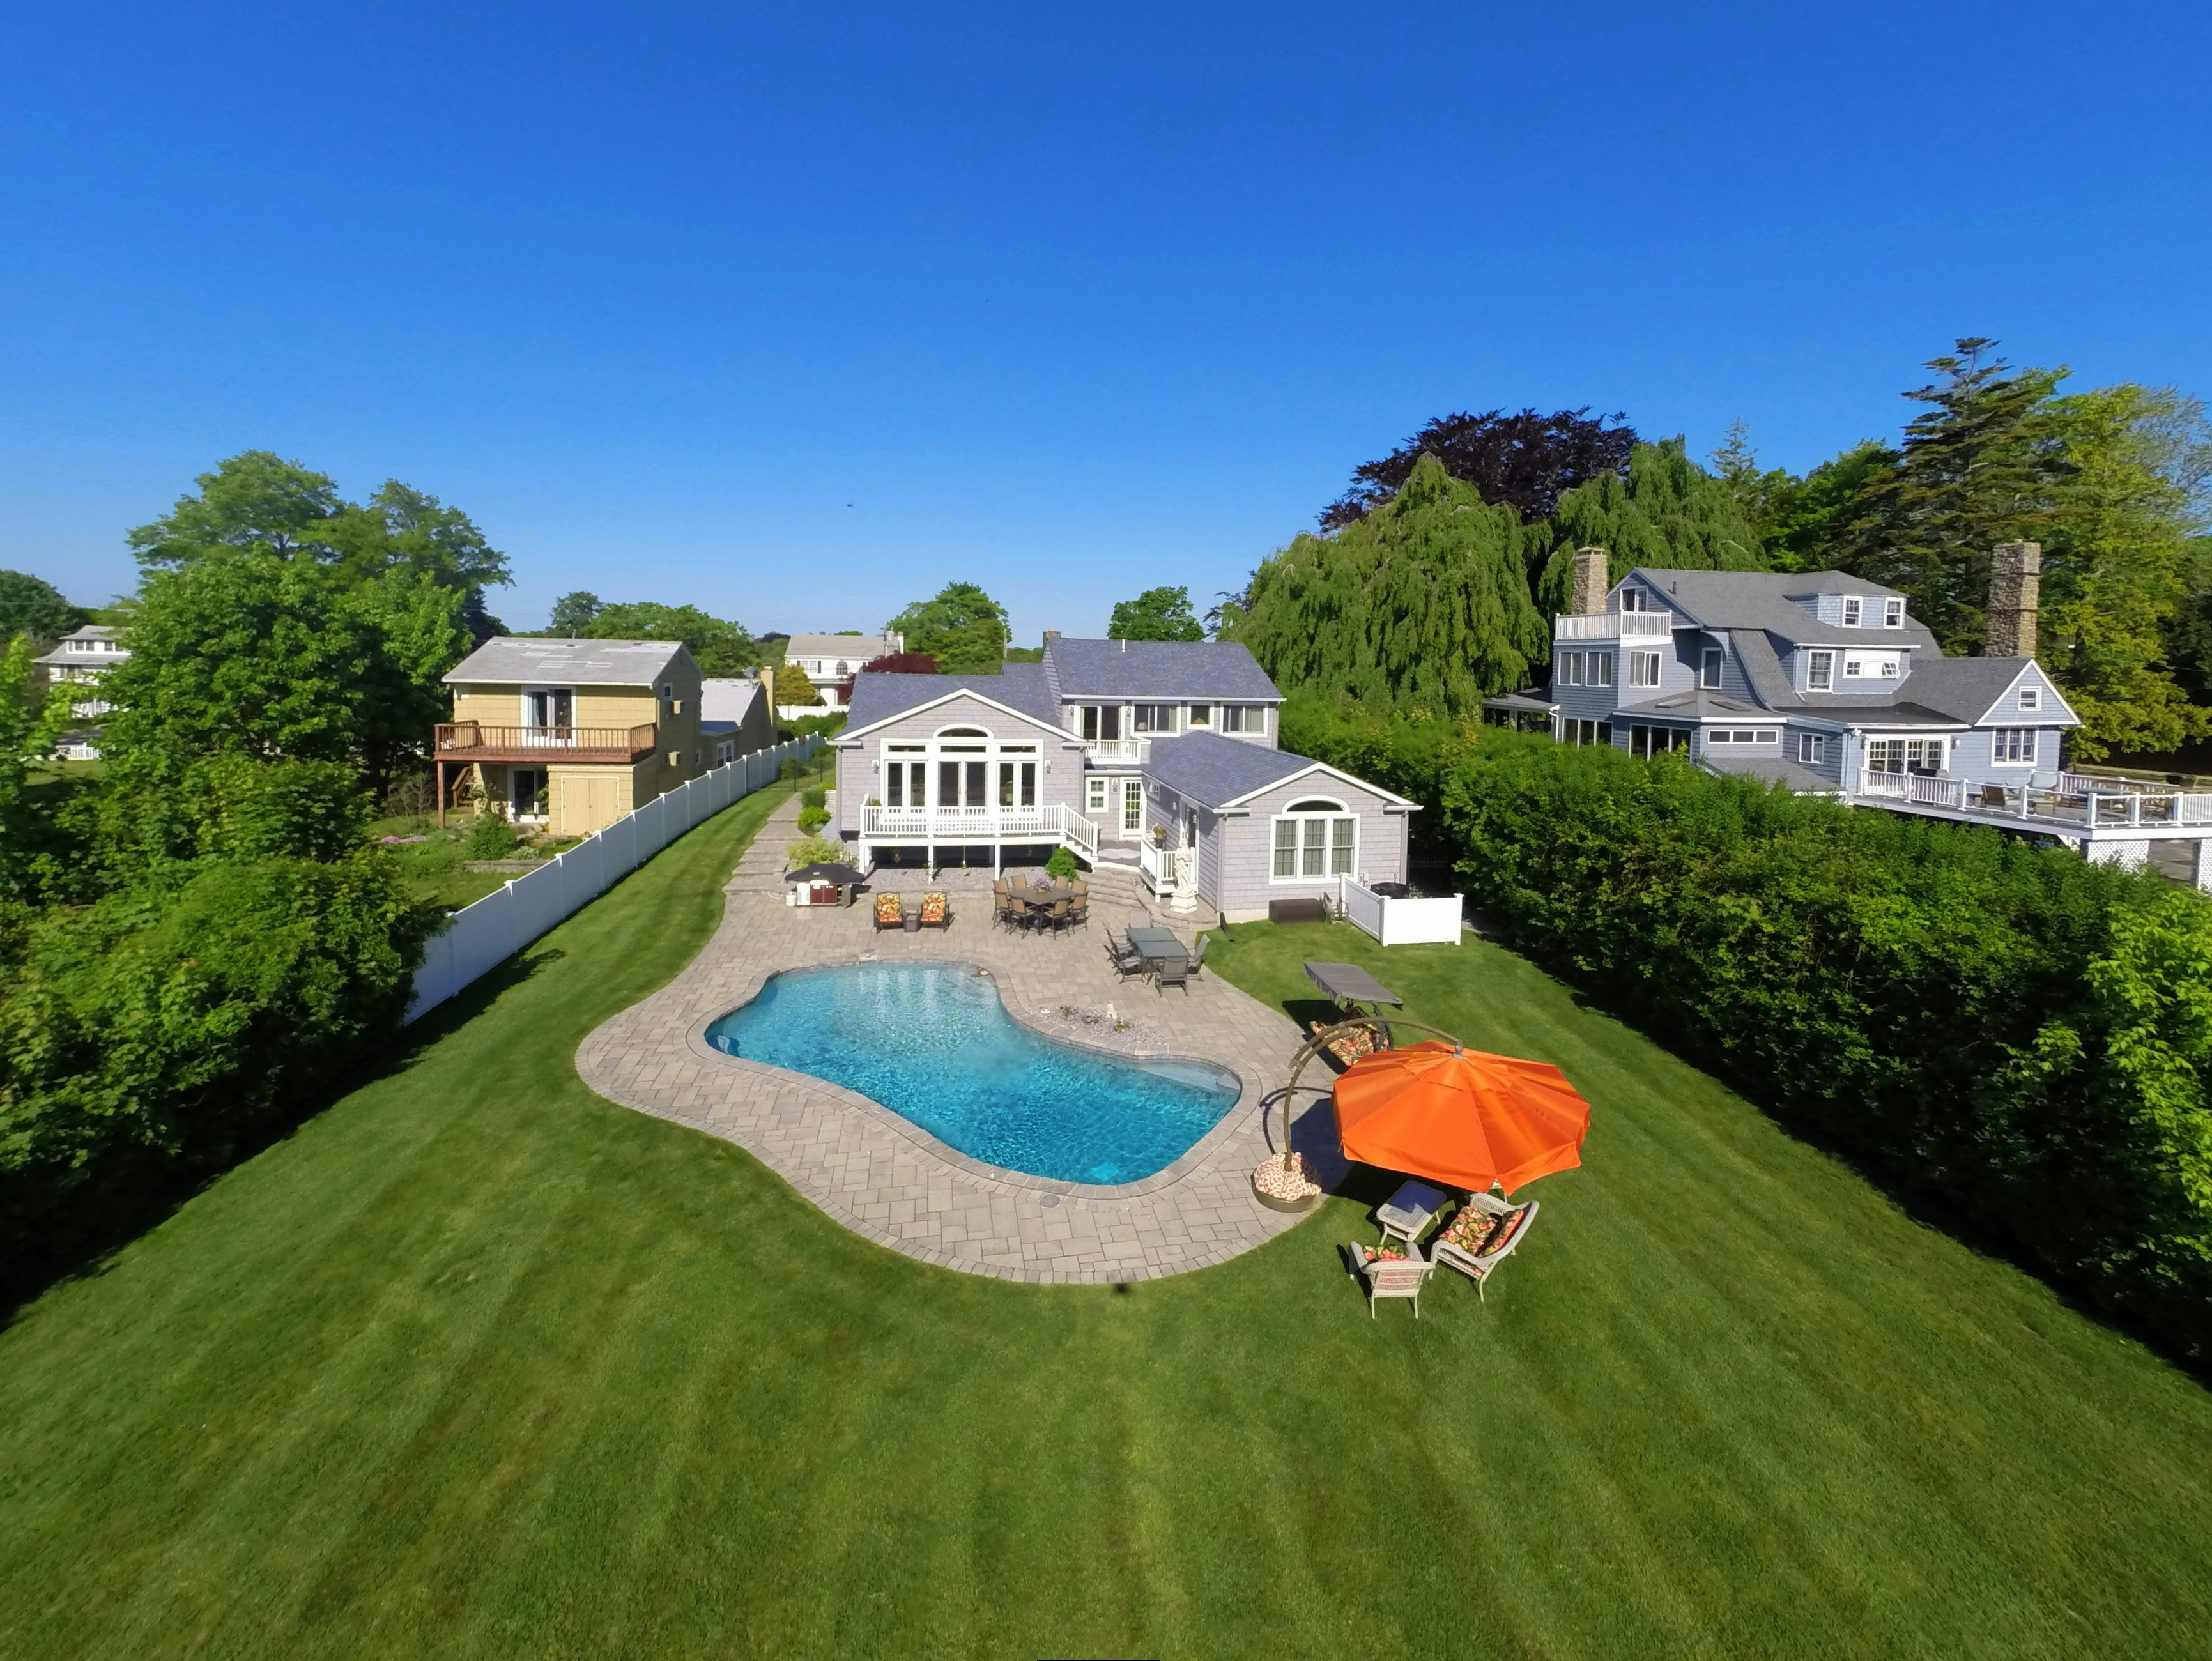 Single Family Home for Sale at Dramatic Water Views 1090 Ocean Avenue New London, Connecticut 06320 United States